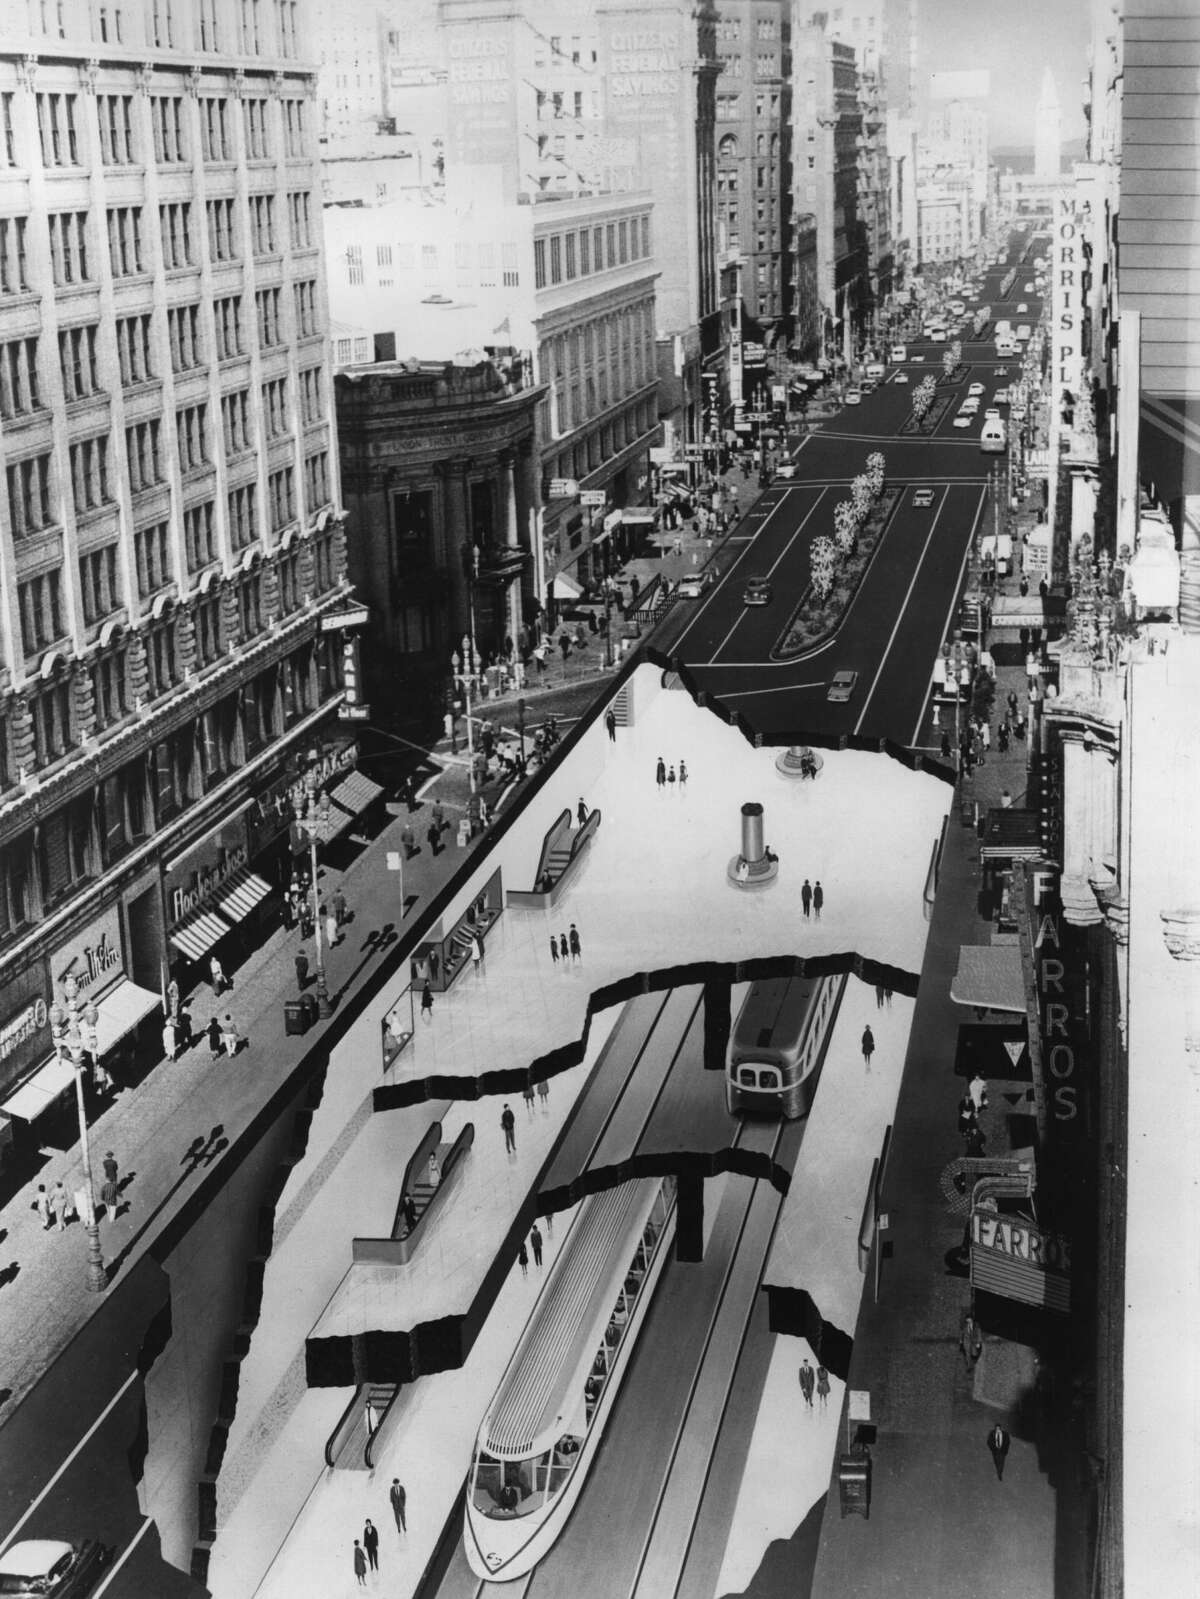 A design from 1965 for an underground ultra rapid transport system at Market Street, San Francisco, to encourage travellers to leave their cars outside the city center. It later became BART.